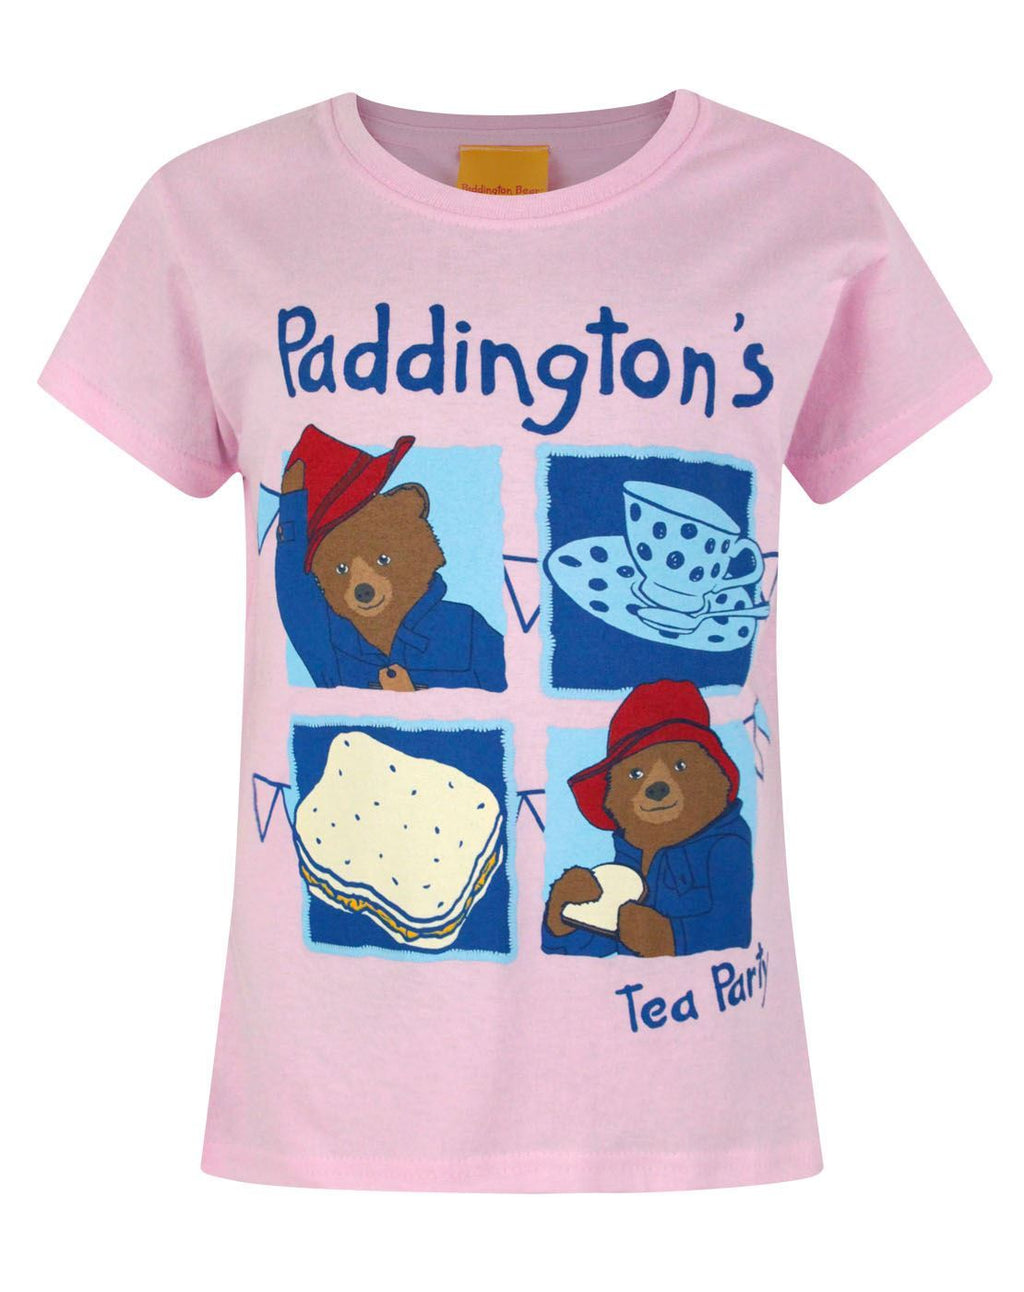 Paddington Bear Tea Party Girl's T-Shirt